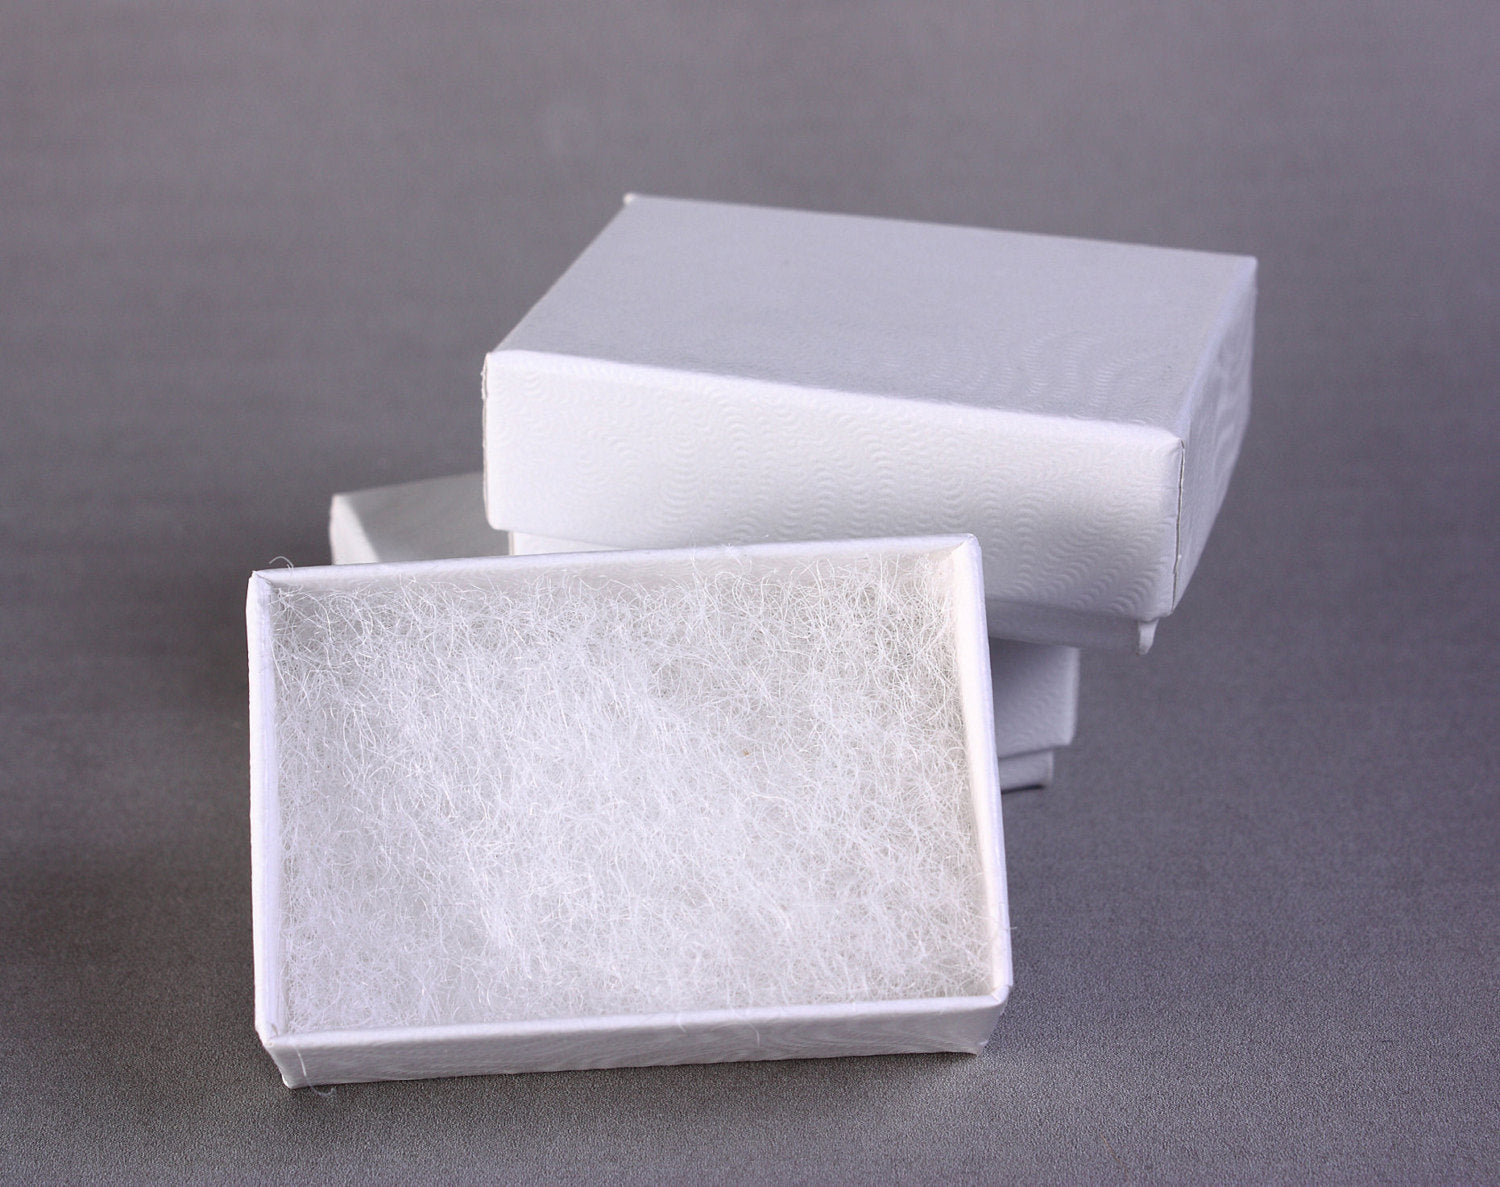 100 tiny white jewelry boxes filled with cotton - 1 7/8 x 1 1/4 x 5/8 inches - 49mm x 33mm x 18mm (1628) - Canadian shipping